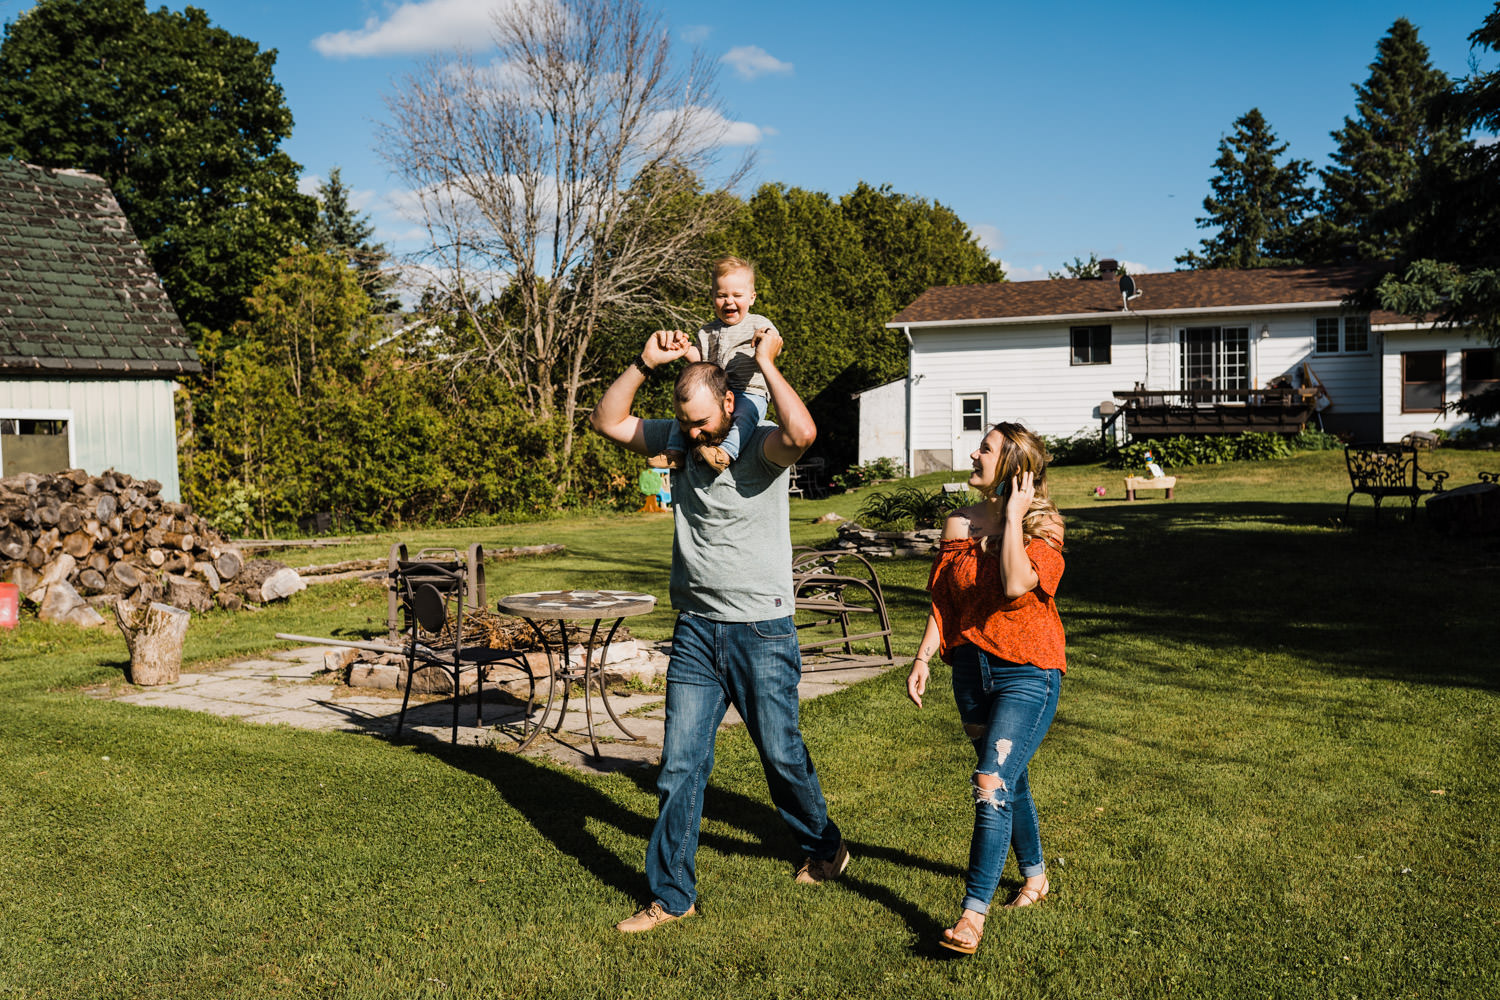 parents walk with their toddler in their backyard